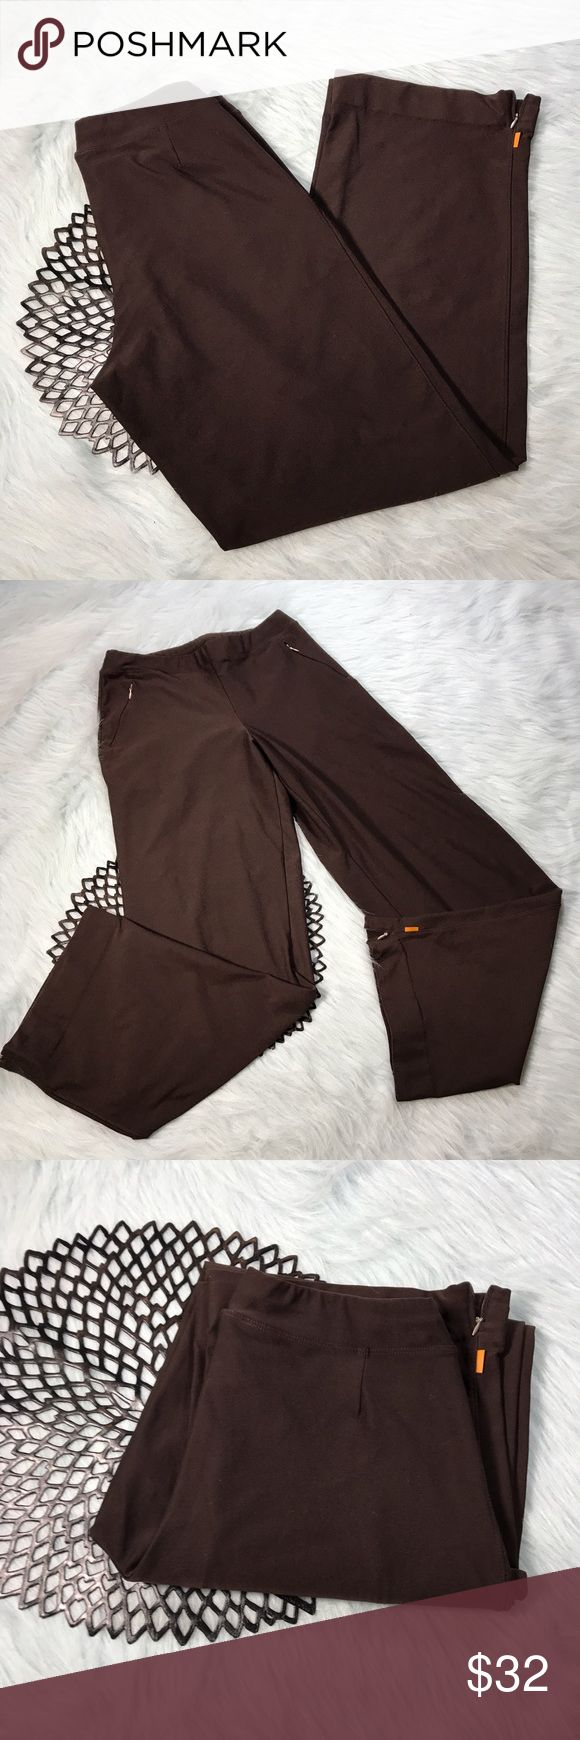 Lucy Activewear Brown Everyday Workout Tall Pants Lucy Activewear Brown The Everyday Workout Tall Pants w/ zippered pockets and ankles. Size Tall Small. Made of 88% micro poly & 12% lycra. Pre-owned, but in excellent used condition. No holes, stains or pilling. Measurements: Waist laying flat is 15 inches. Length is 43 inches. Inseam is 34 inches. Rise is 13 inches. Lucy Pants Track Pants & Joggers